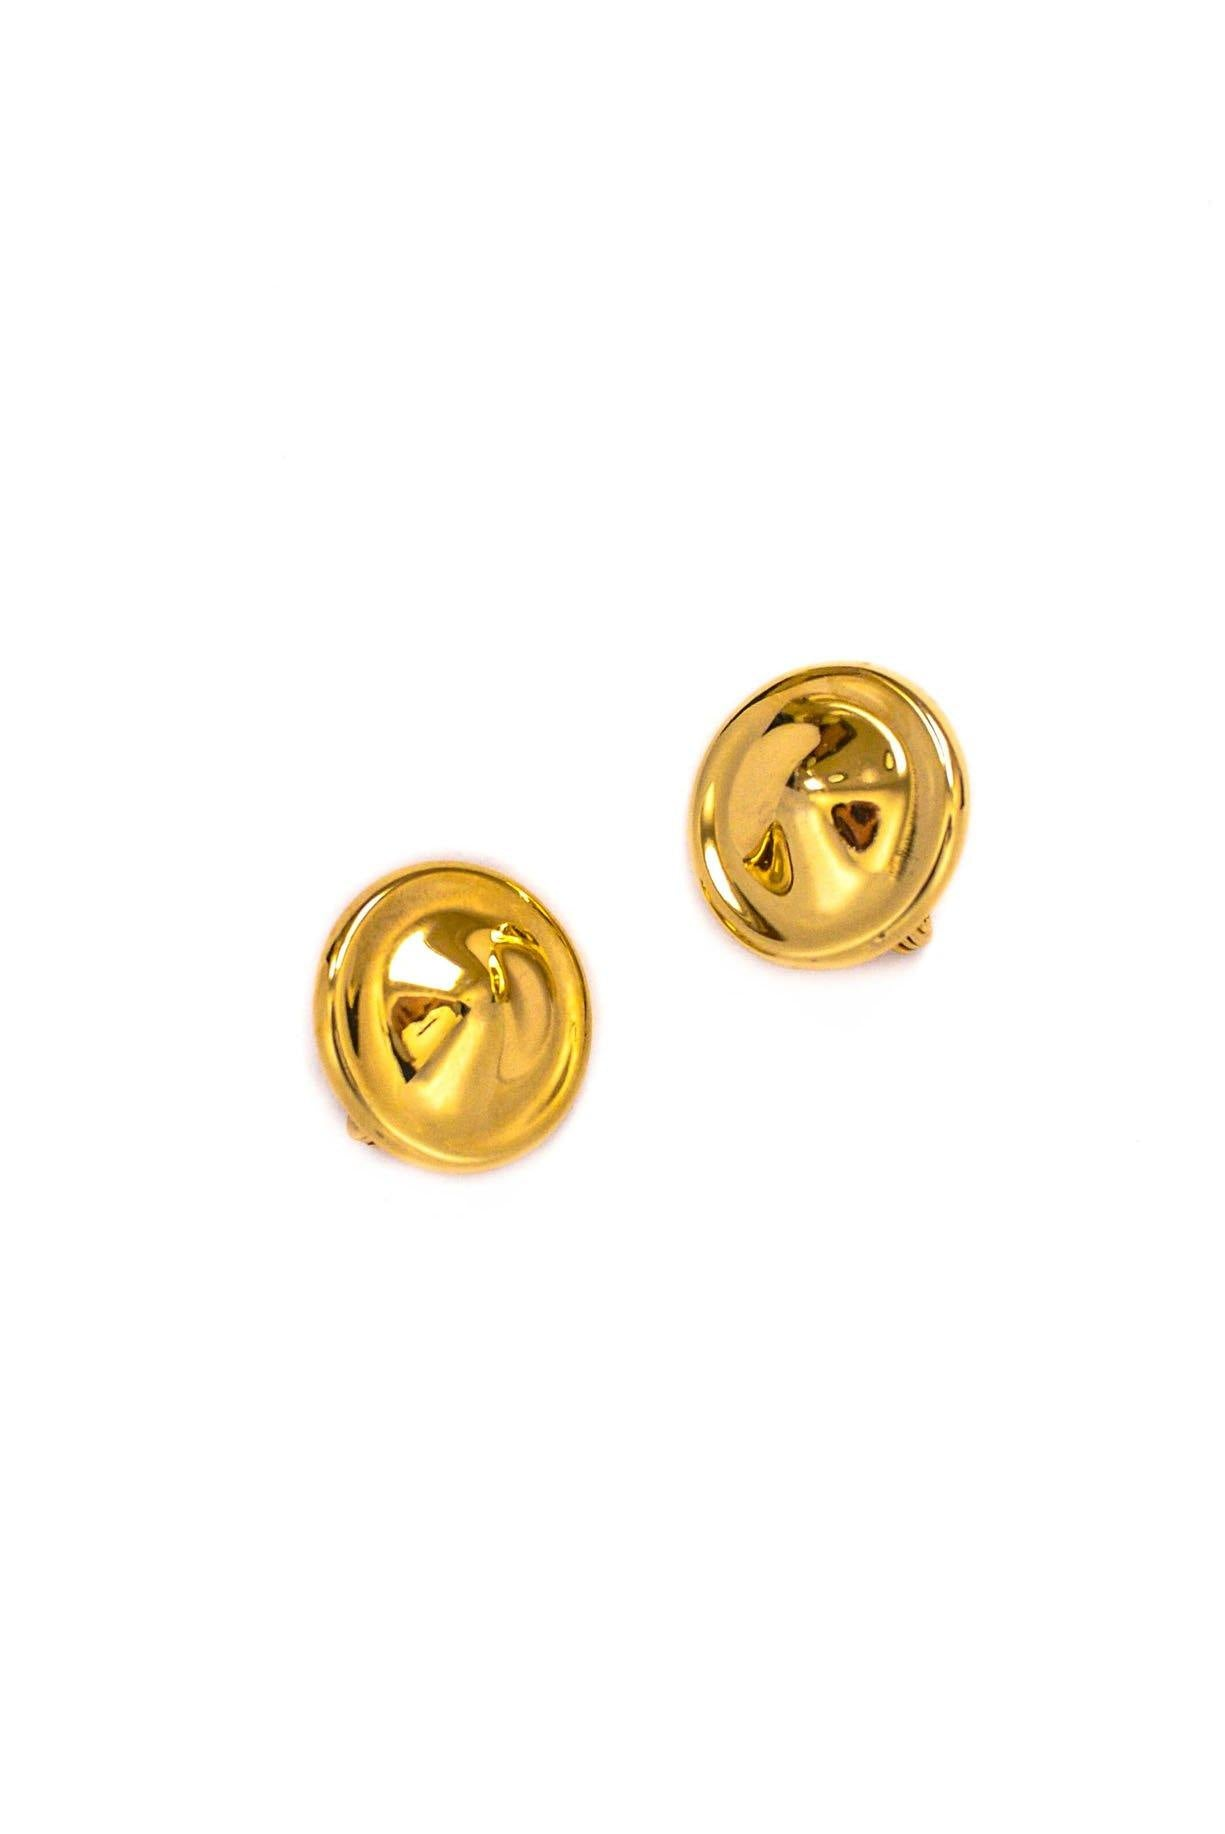 Vintage Gold Disc Clip-on Earrings from Sweet and Spark